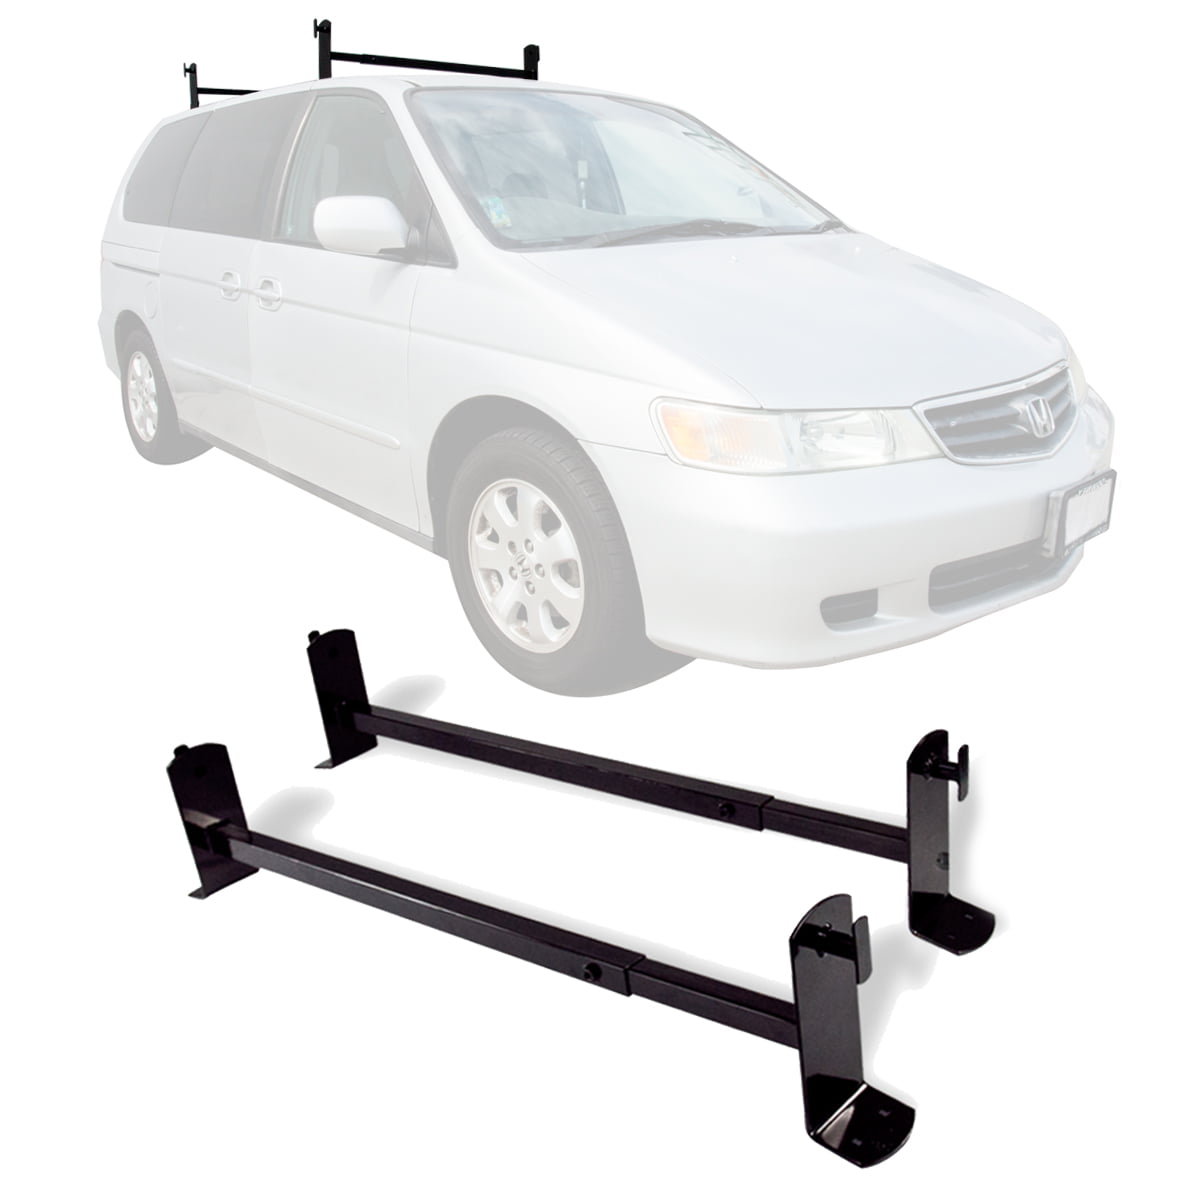 for es tracvan racks ladder roof tracrac suv rack van lg shipping free truck